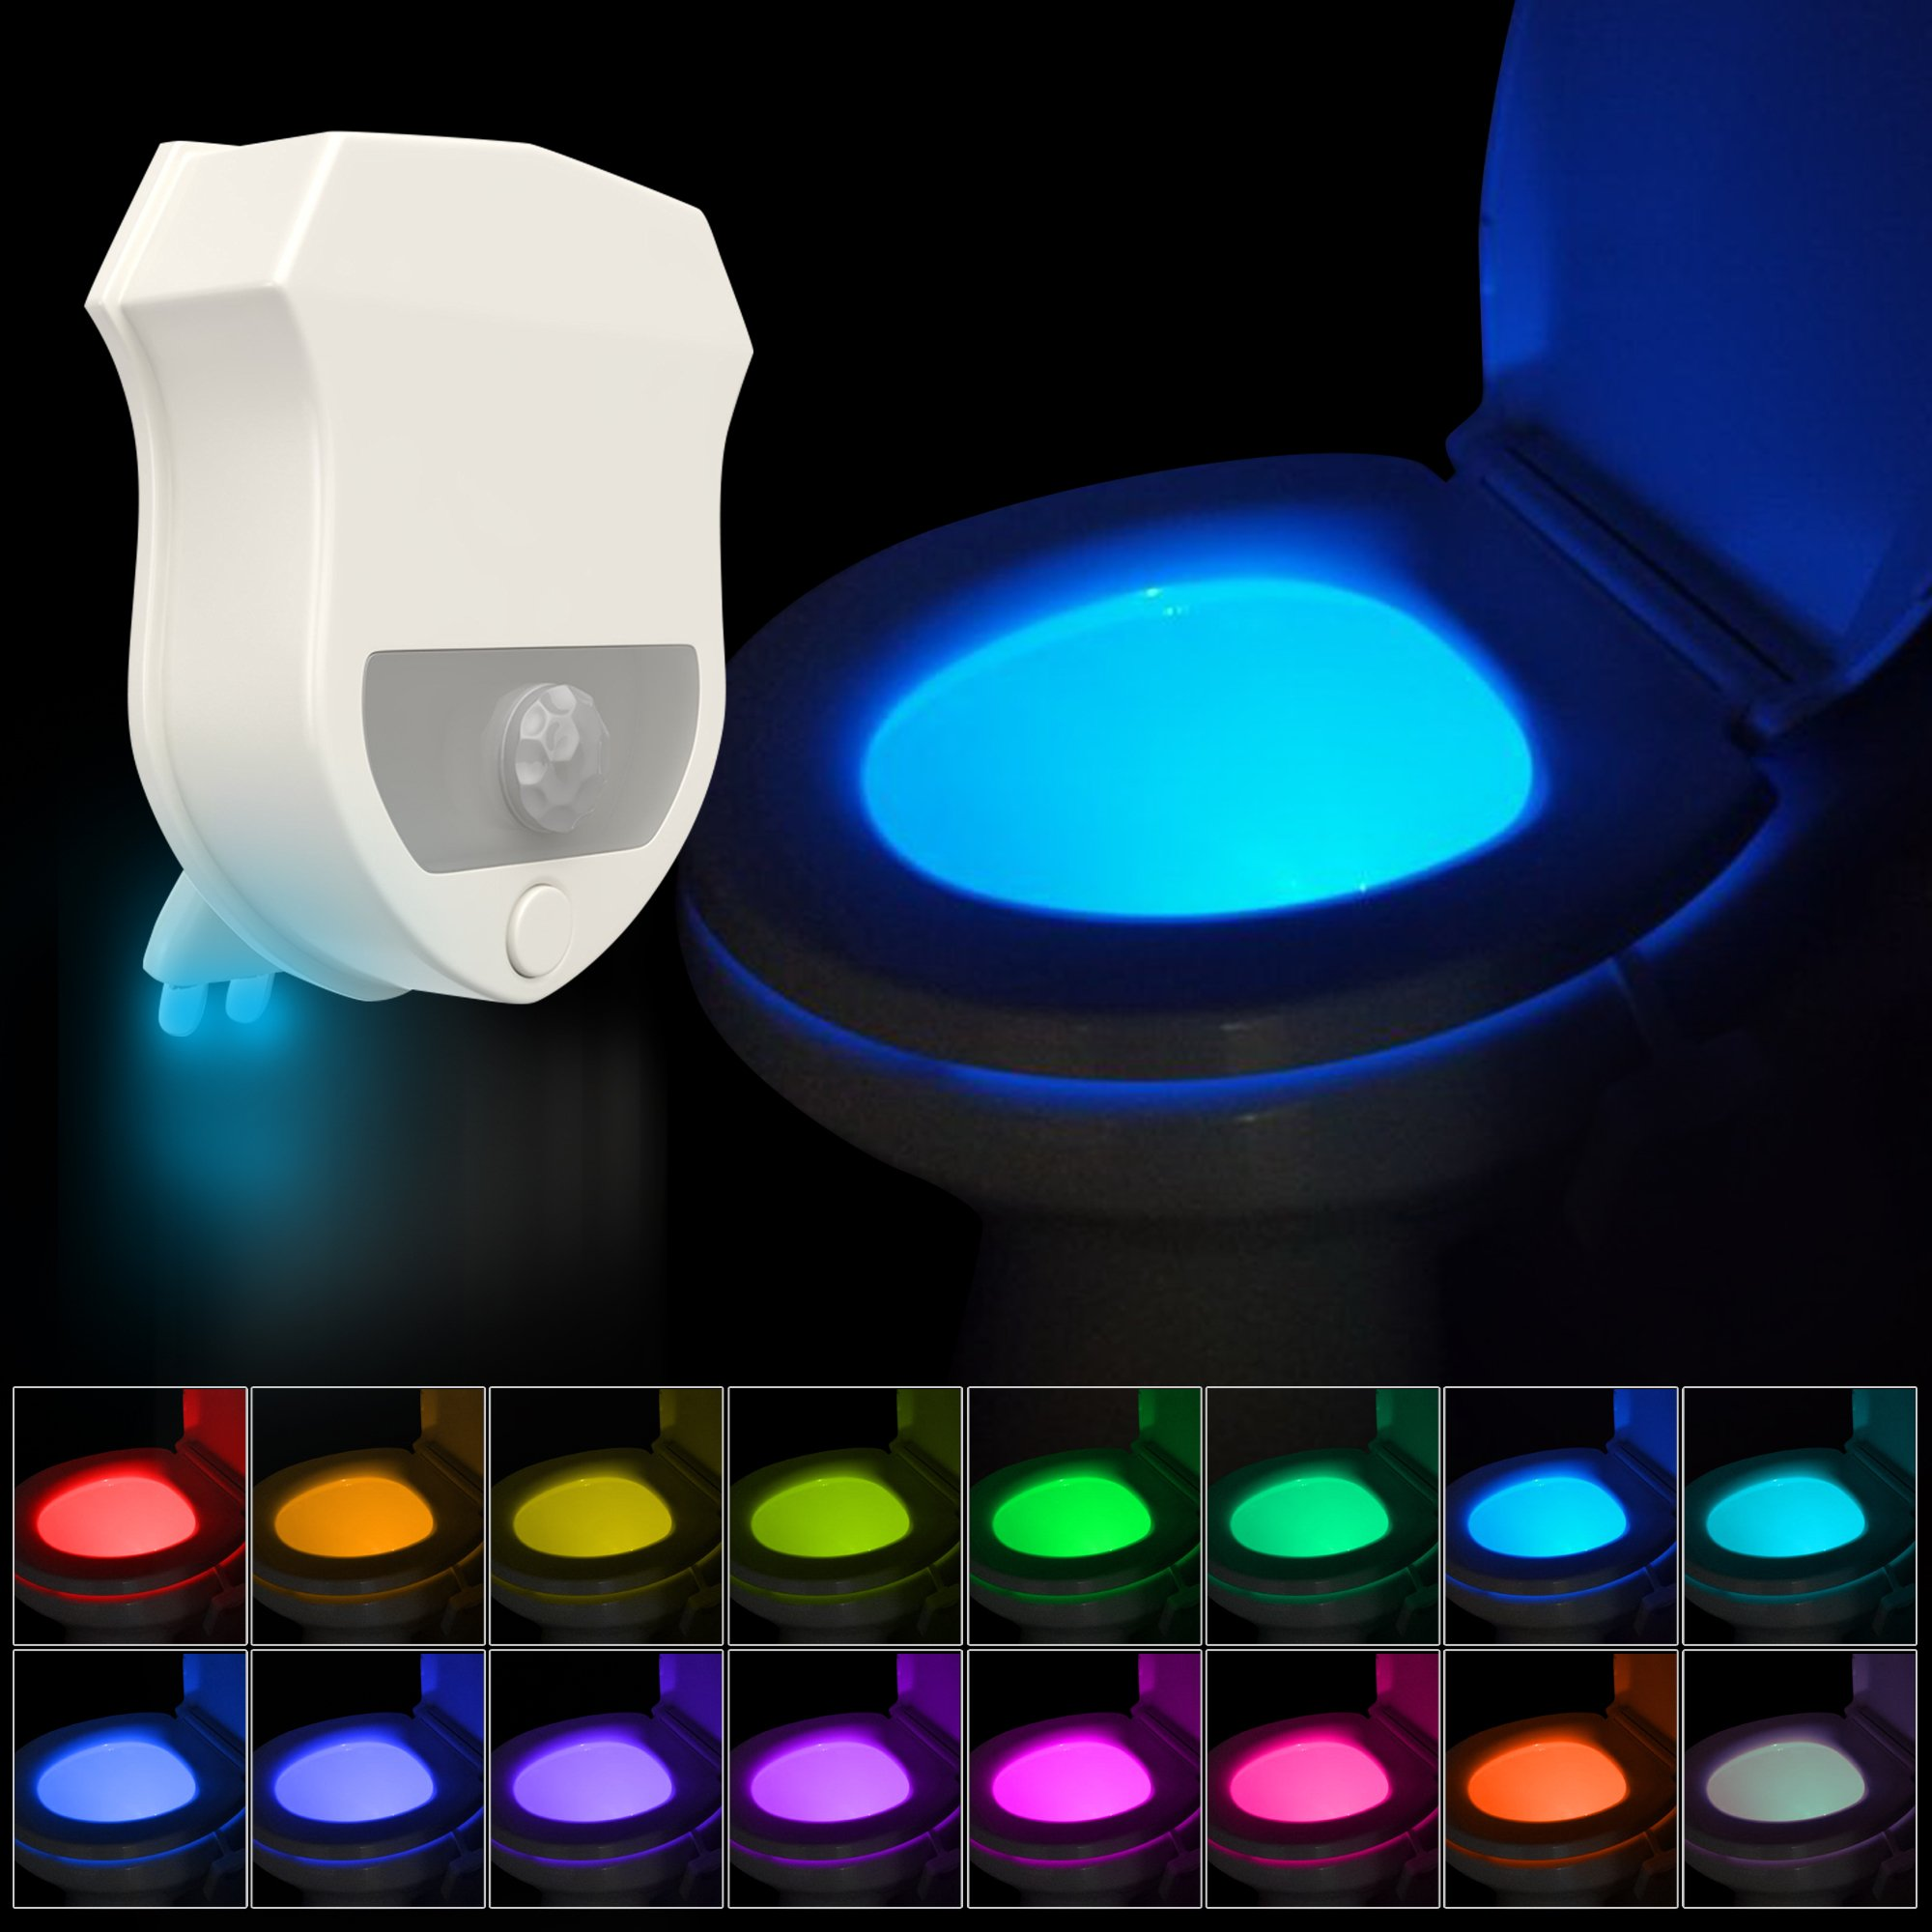 16-Color Motion Activated Toilet Light Night Toilit Light LED Light Changing Tolet Bowl Nightlight for Bathroom Perfect Decorating illumibowl Water Toilite Light